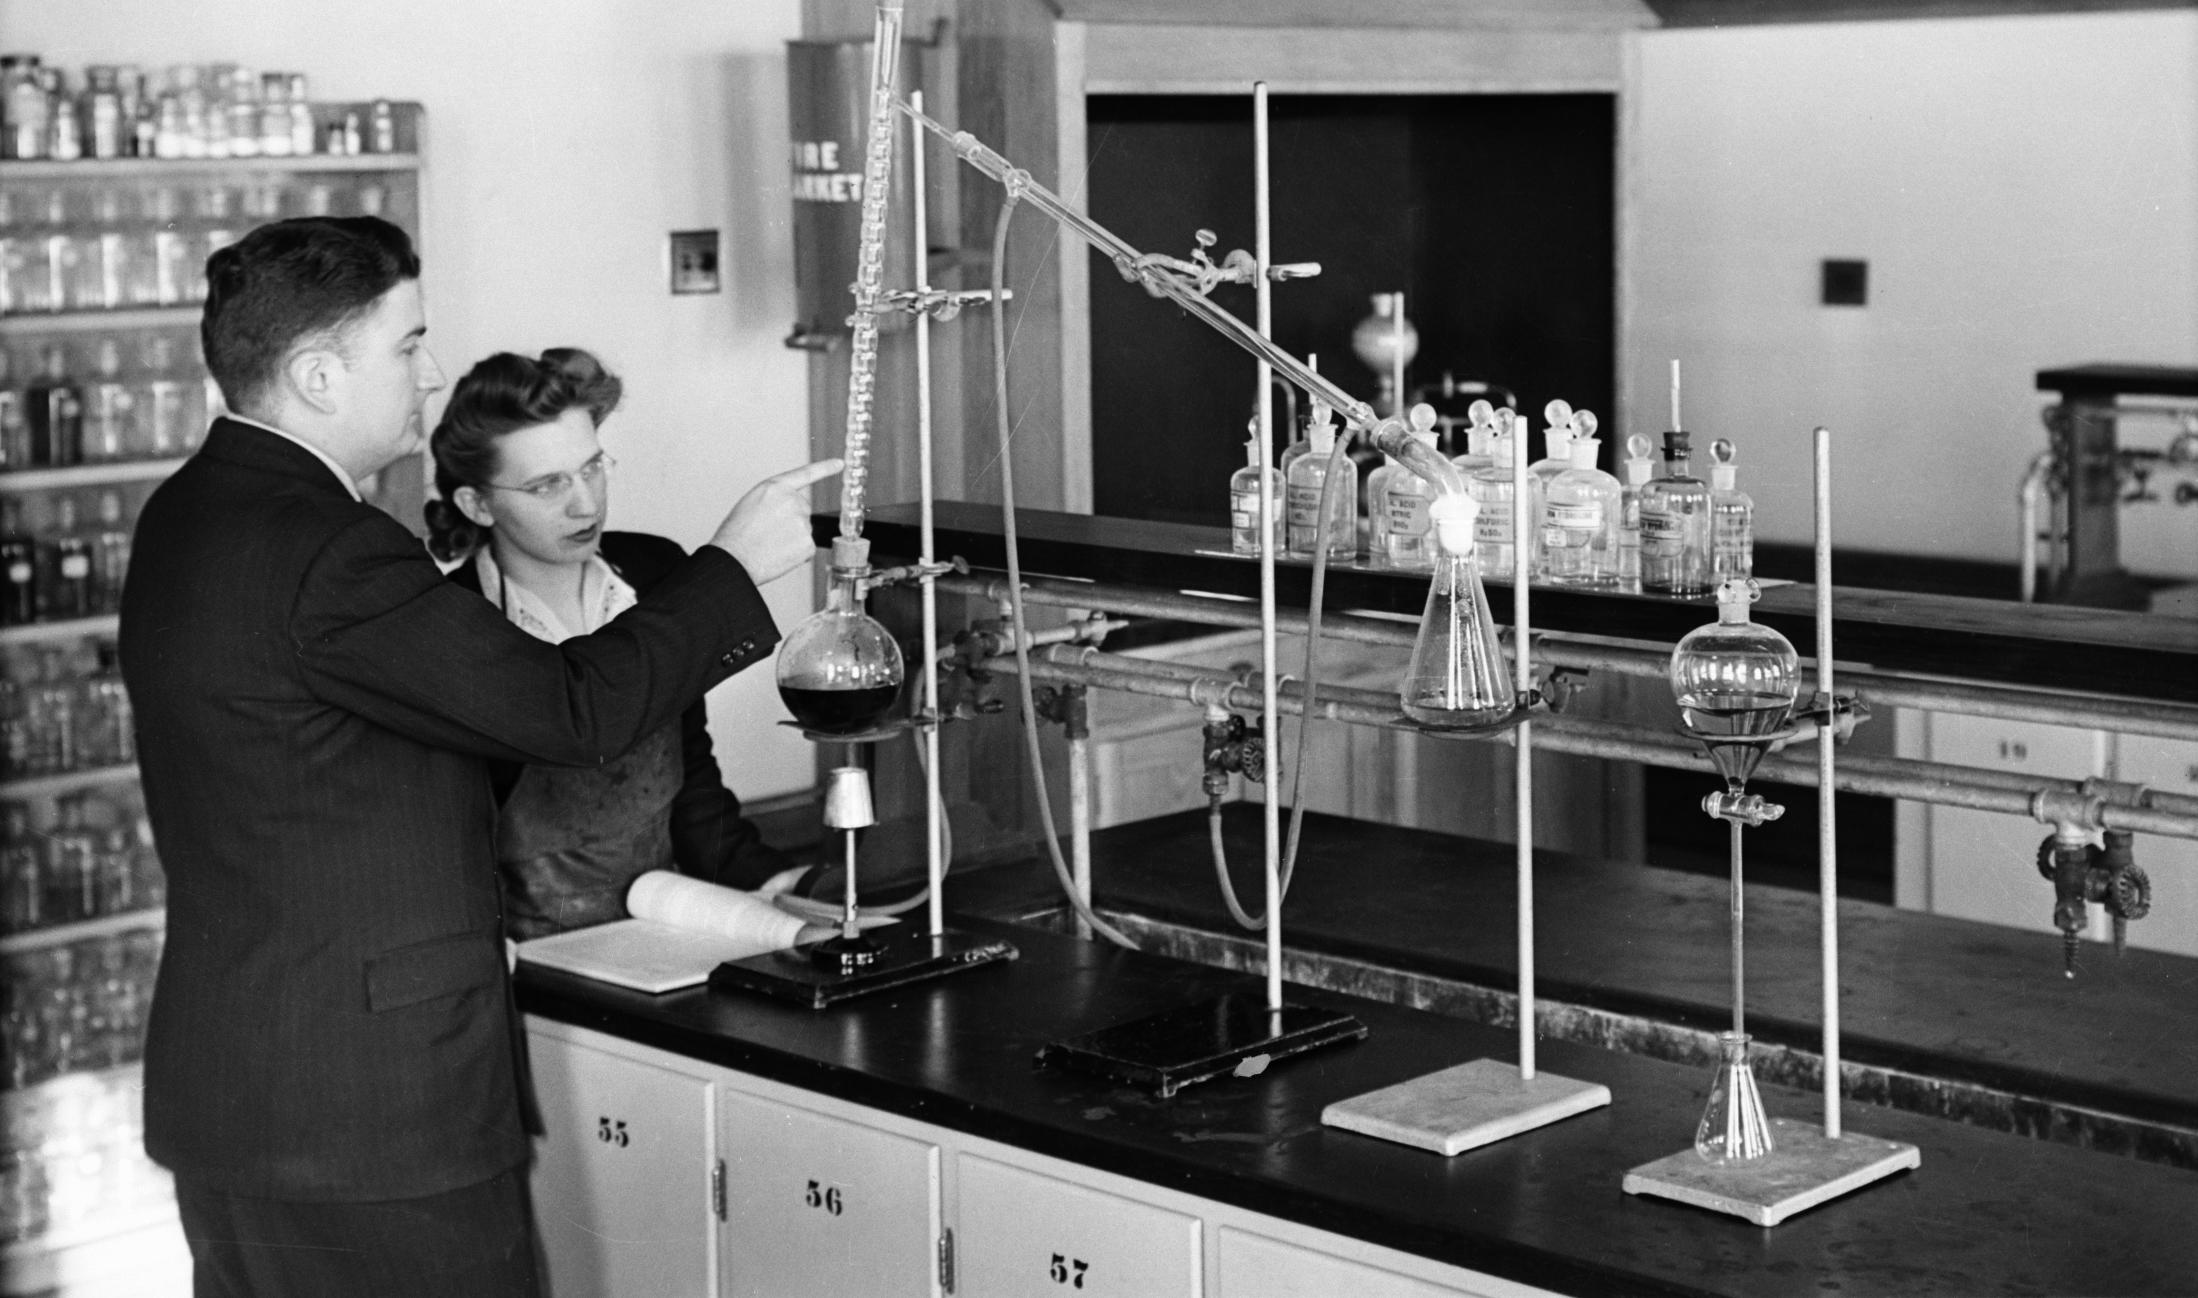 Vintage photo of chemistry student and professor